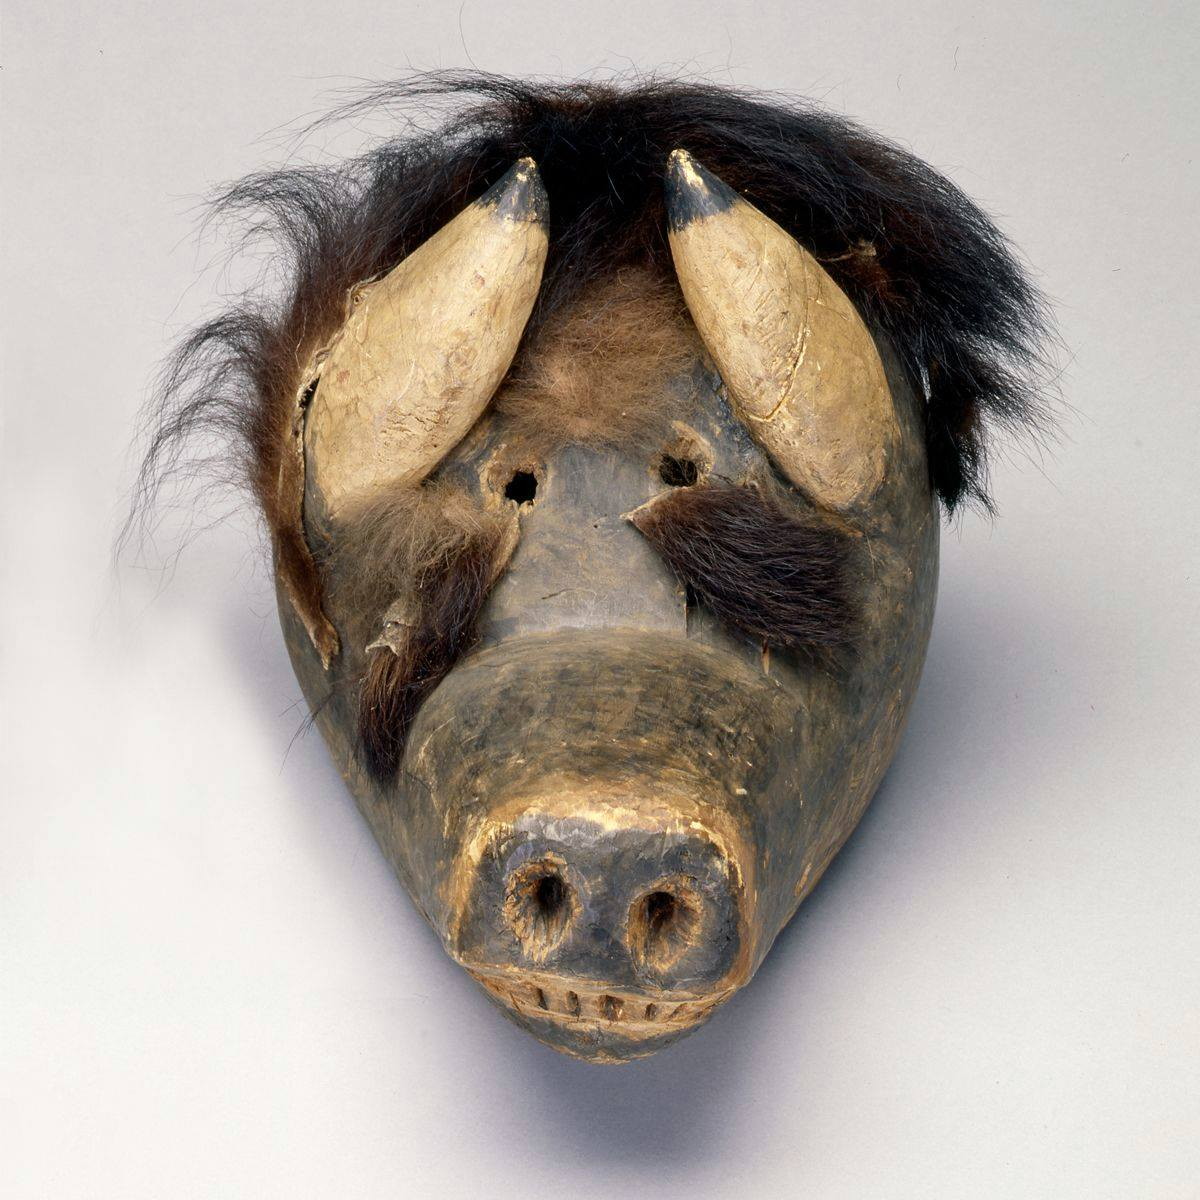 Sculpture depicting a straight-on view of a dark brown, painted wooden face of a buffalo with a long snout. Carving marks are visible over the entire head, especially on the snout, nose, and eyes. Prominent round nostrils in the rectangular nose end the broad snout. A row of six teeth are visible below the nose. Two small round eye holes, spaced close together, sit between two thick, pale tan horns tipped in black. These sit on either side of the eyes pointing inward. Dark, nearly black fur tops the head; the fur is longish and wiry, standing up in places from the head. Lighter brown fur is positioned just above the eye holes. Two patches of buffalo hide are positioned below the eyes just before where the snout begins.